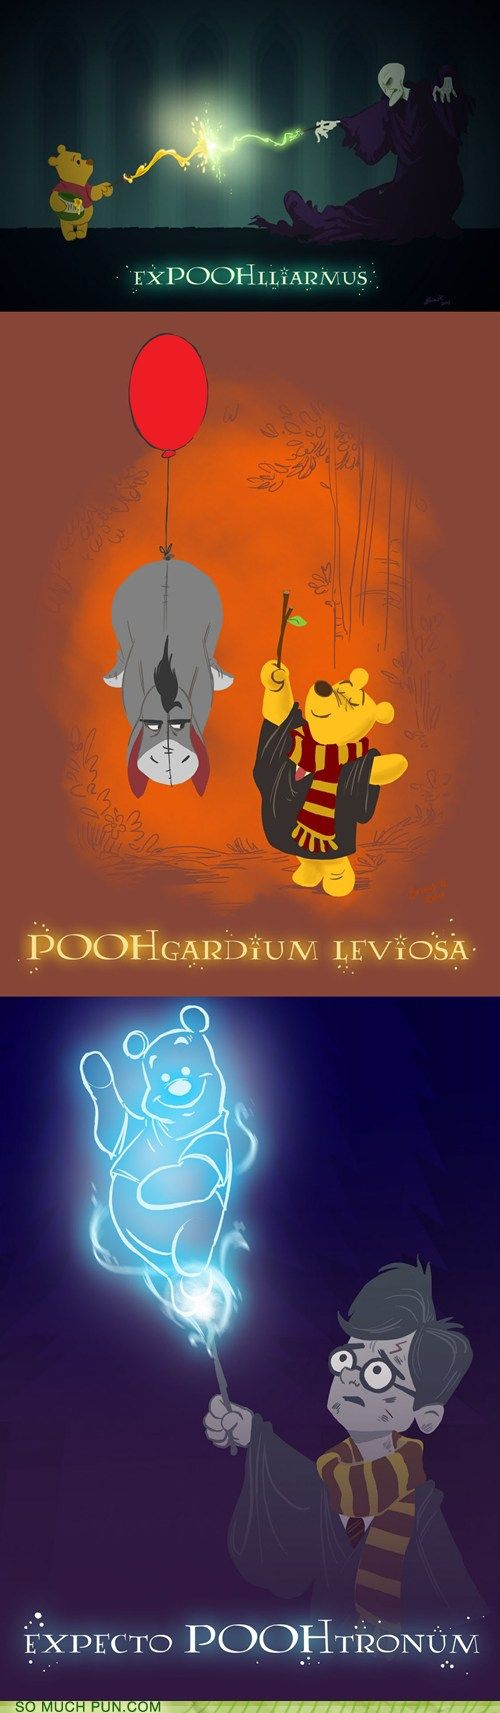 HP meets Disney :D LOVE it!